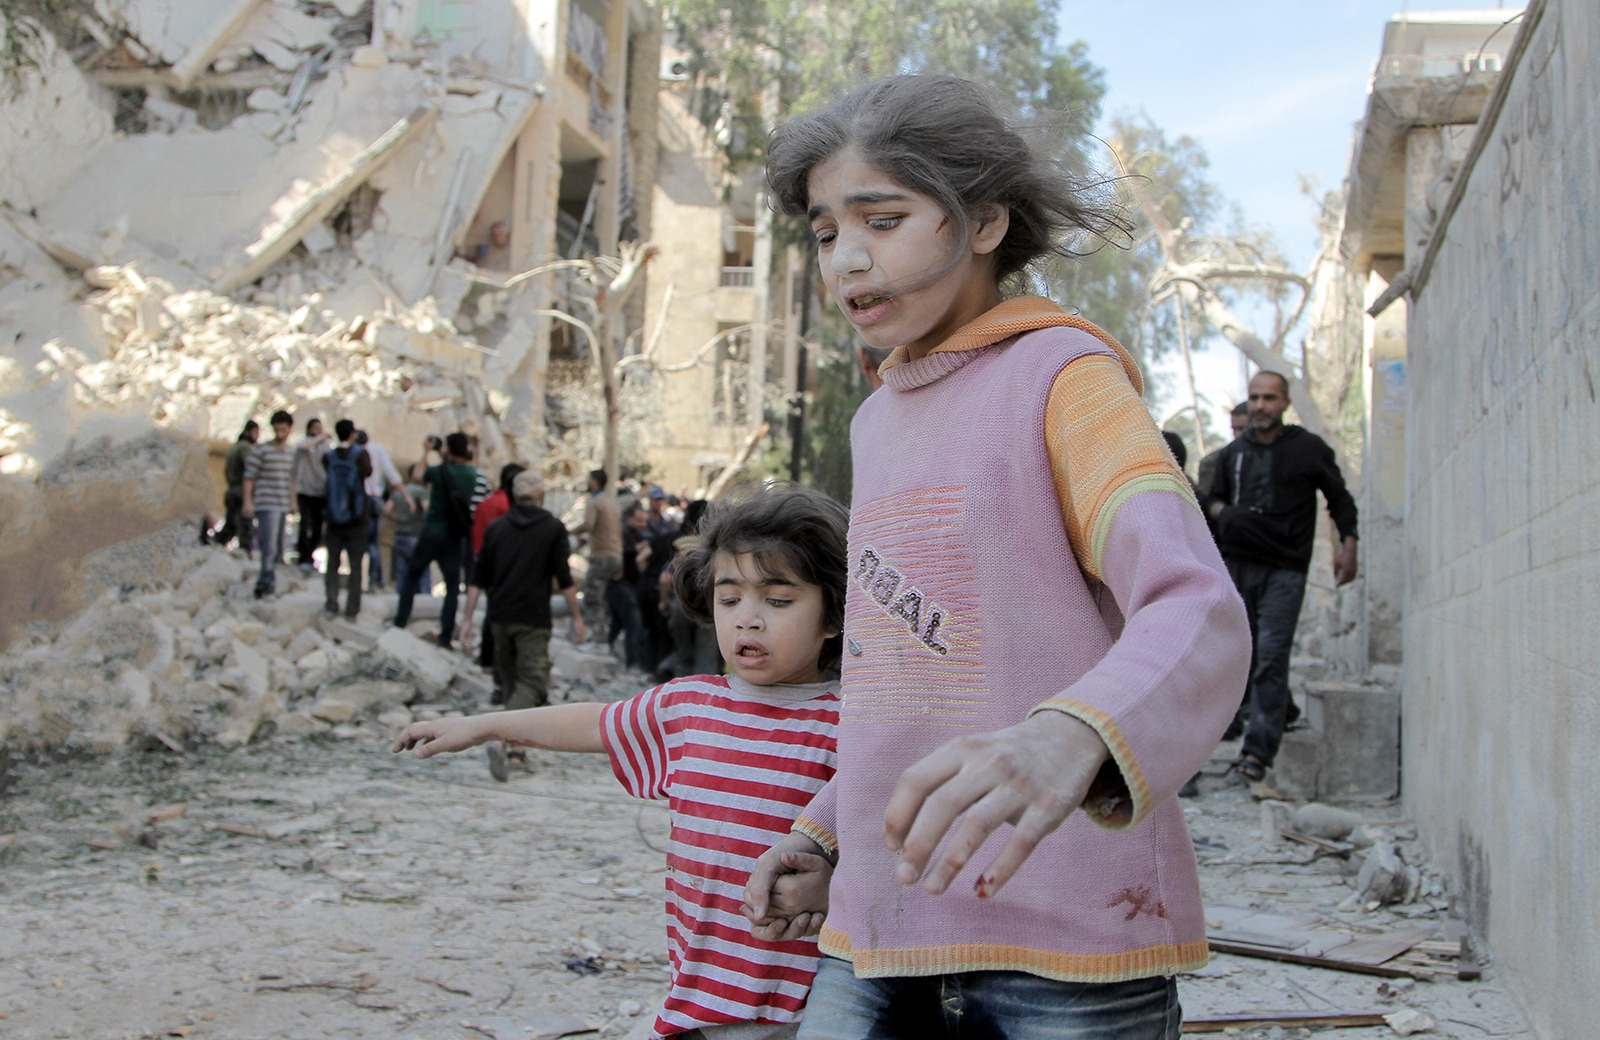 Syria Appeal - Donate to Syria Emergency Appeal | Islamic Relief UK